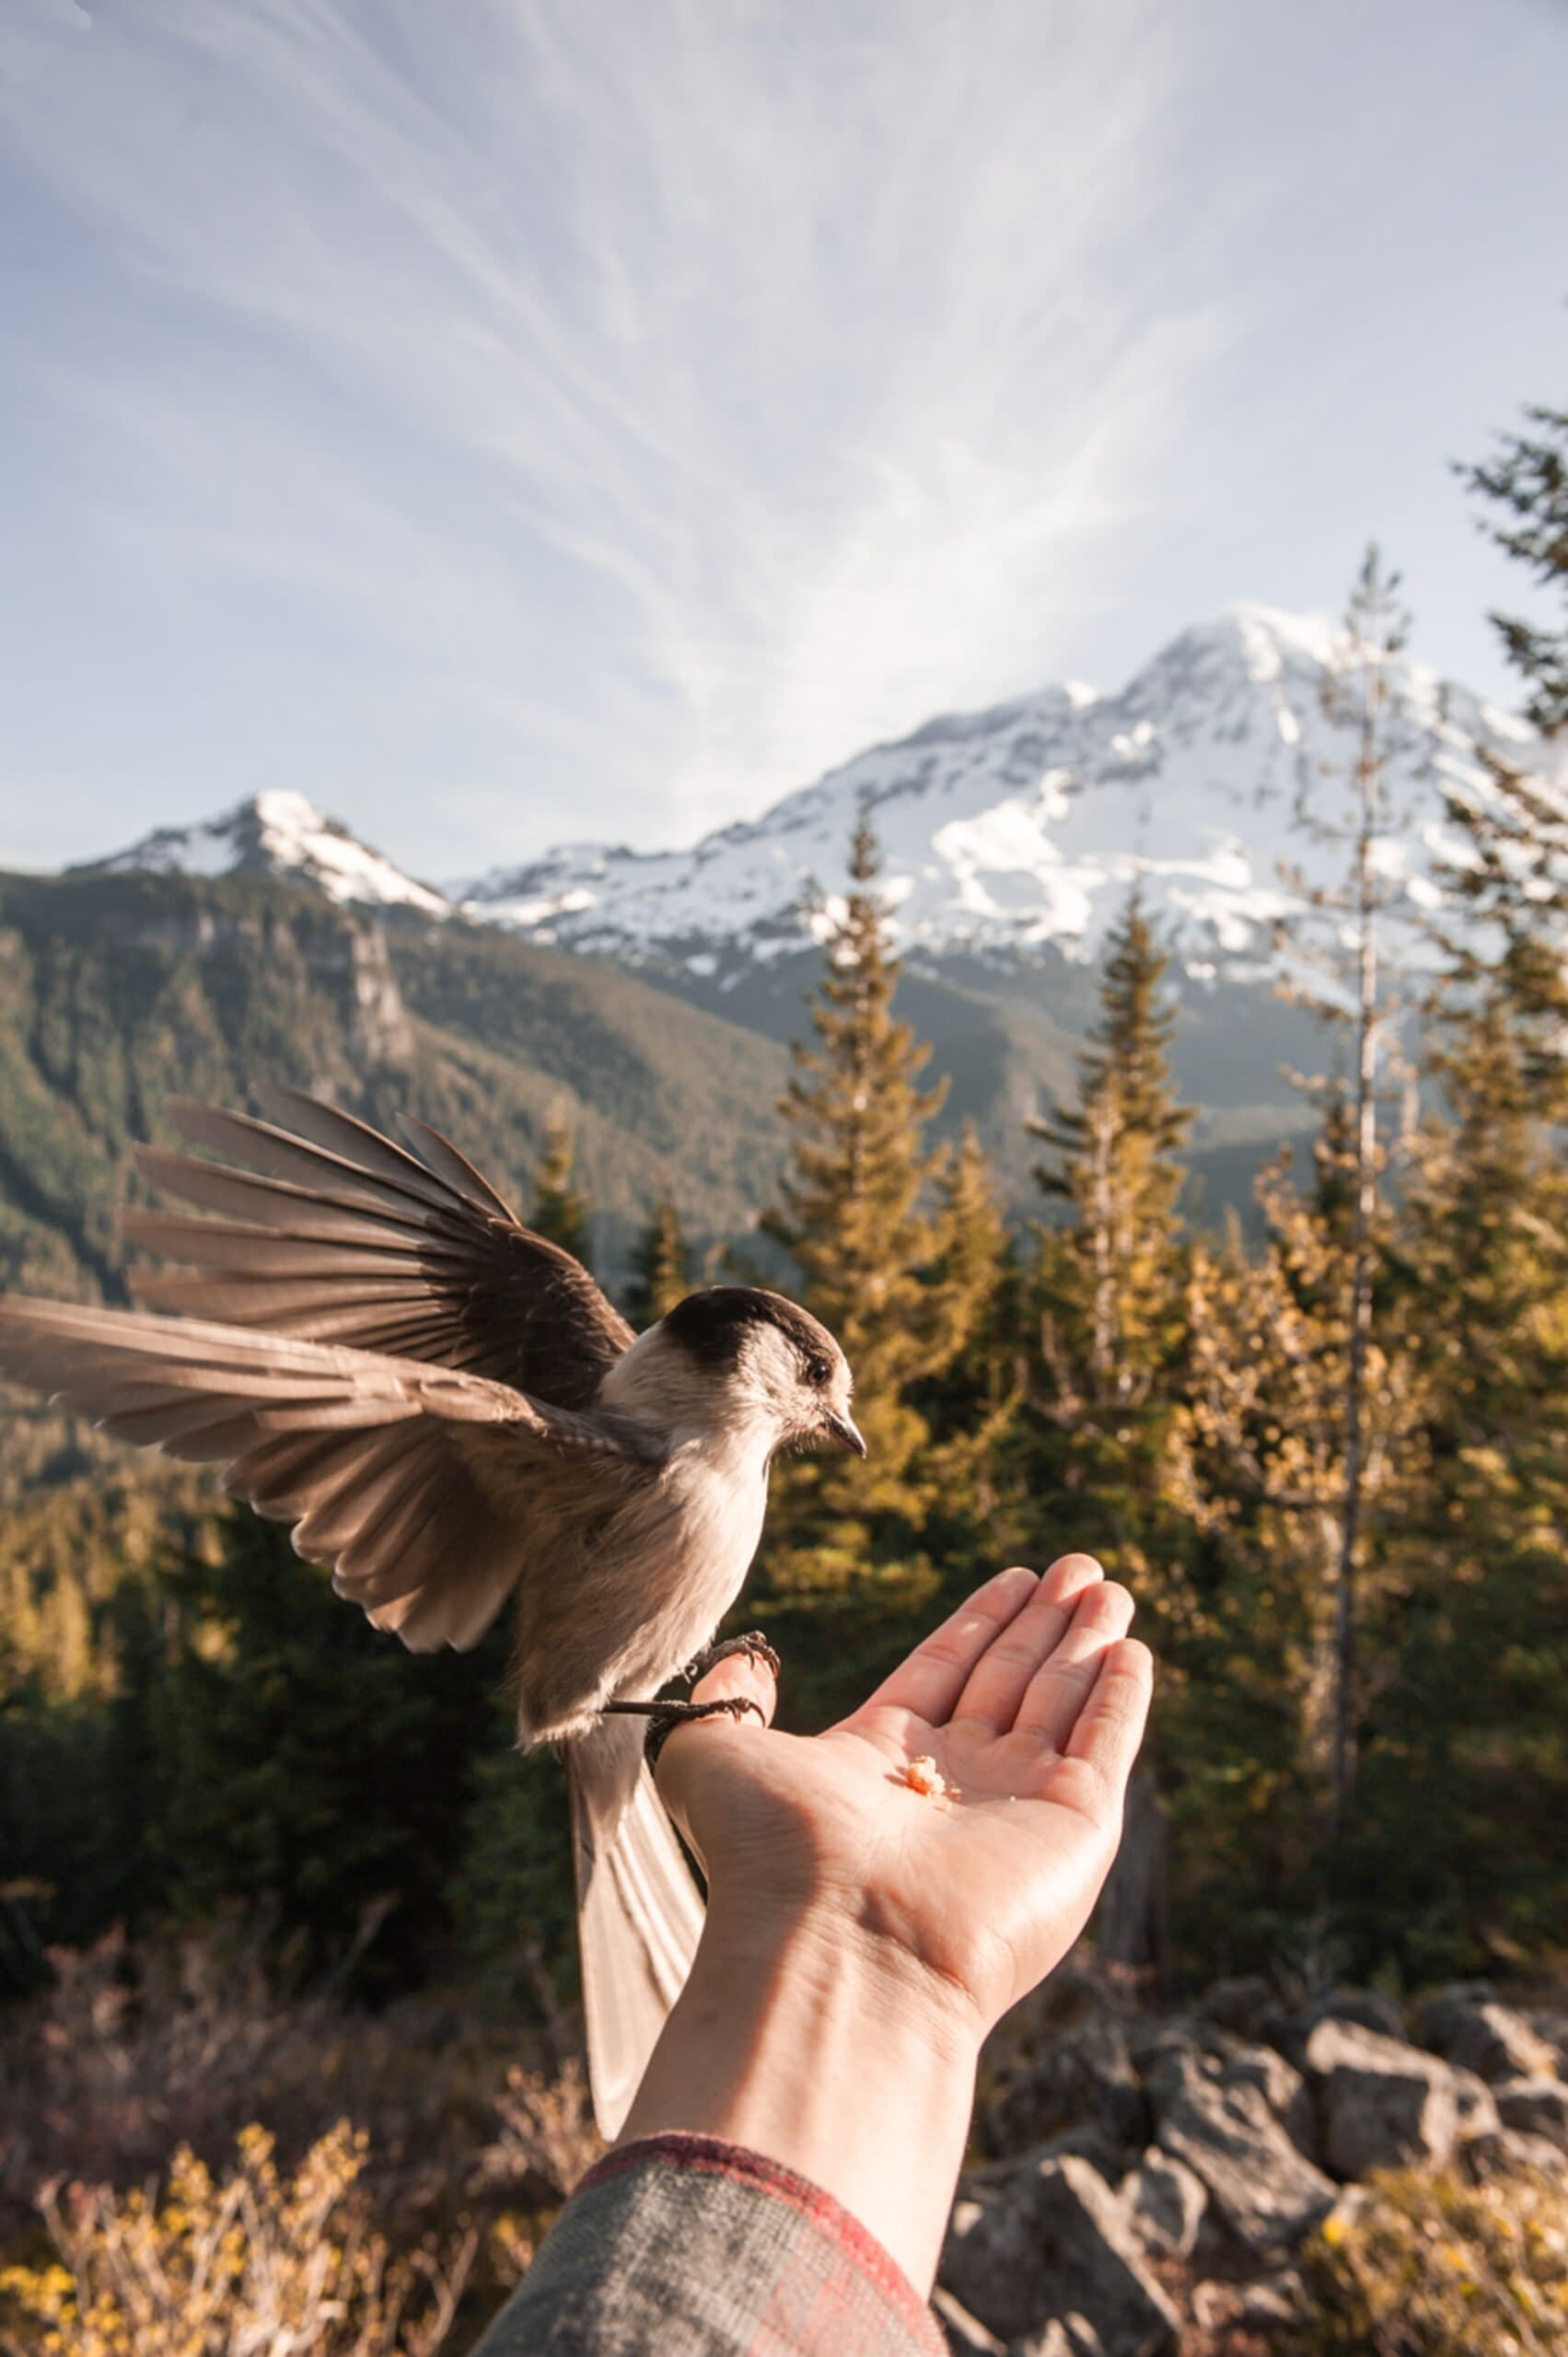 Dealing with Shame as a chrisitan starts with understanding God's POV on forgiveness. A man letting go a bird